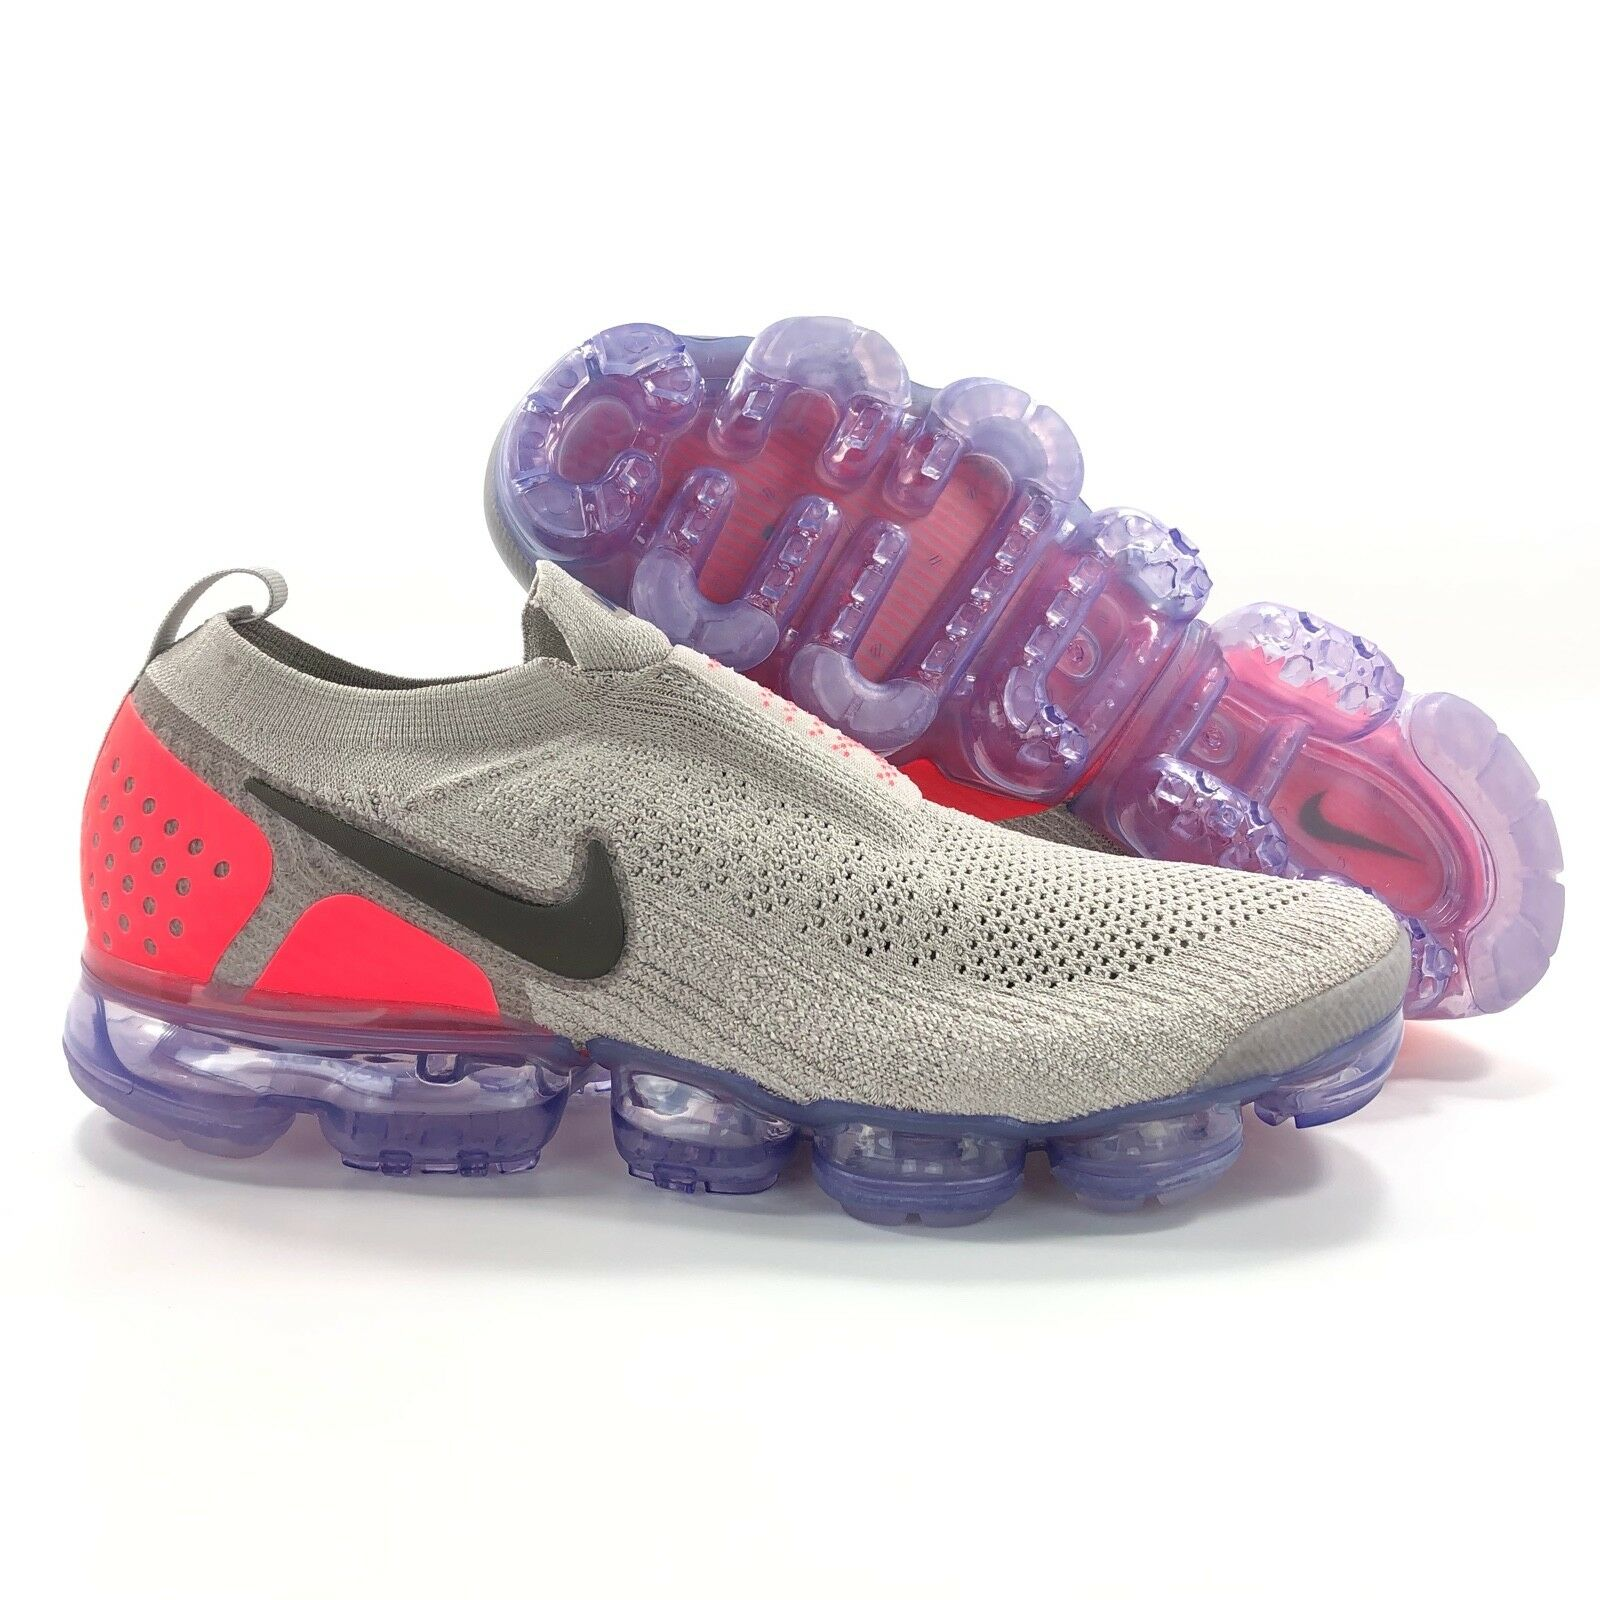 Nike Air Vapormax FK Flyknit Moc 2 Moon Particle Grey Red AH7006-201 Men's 10.5